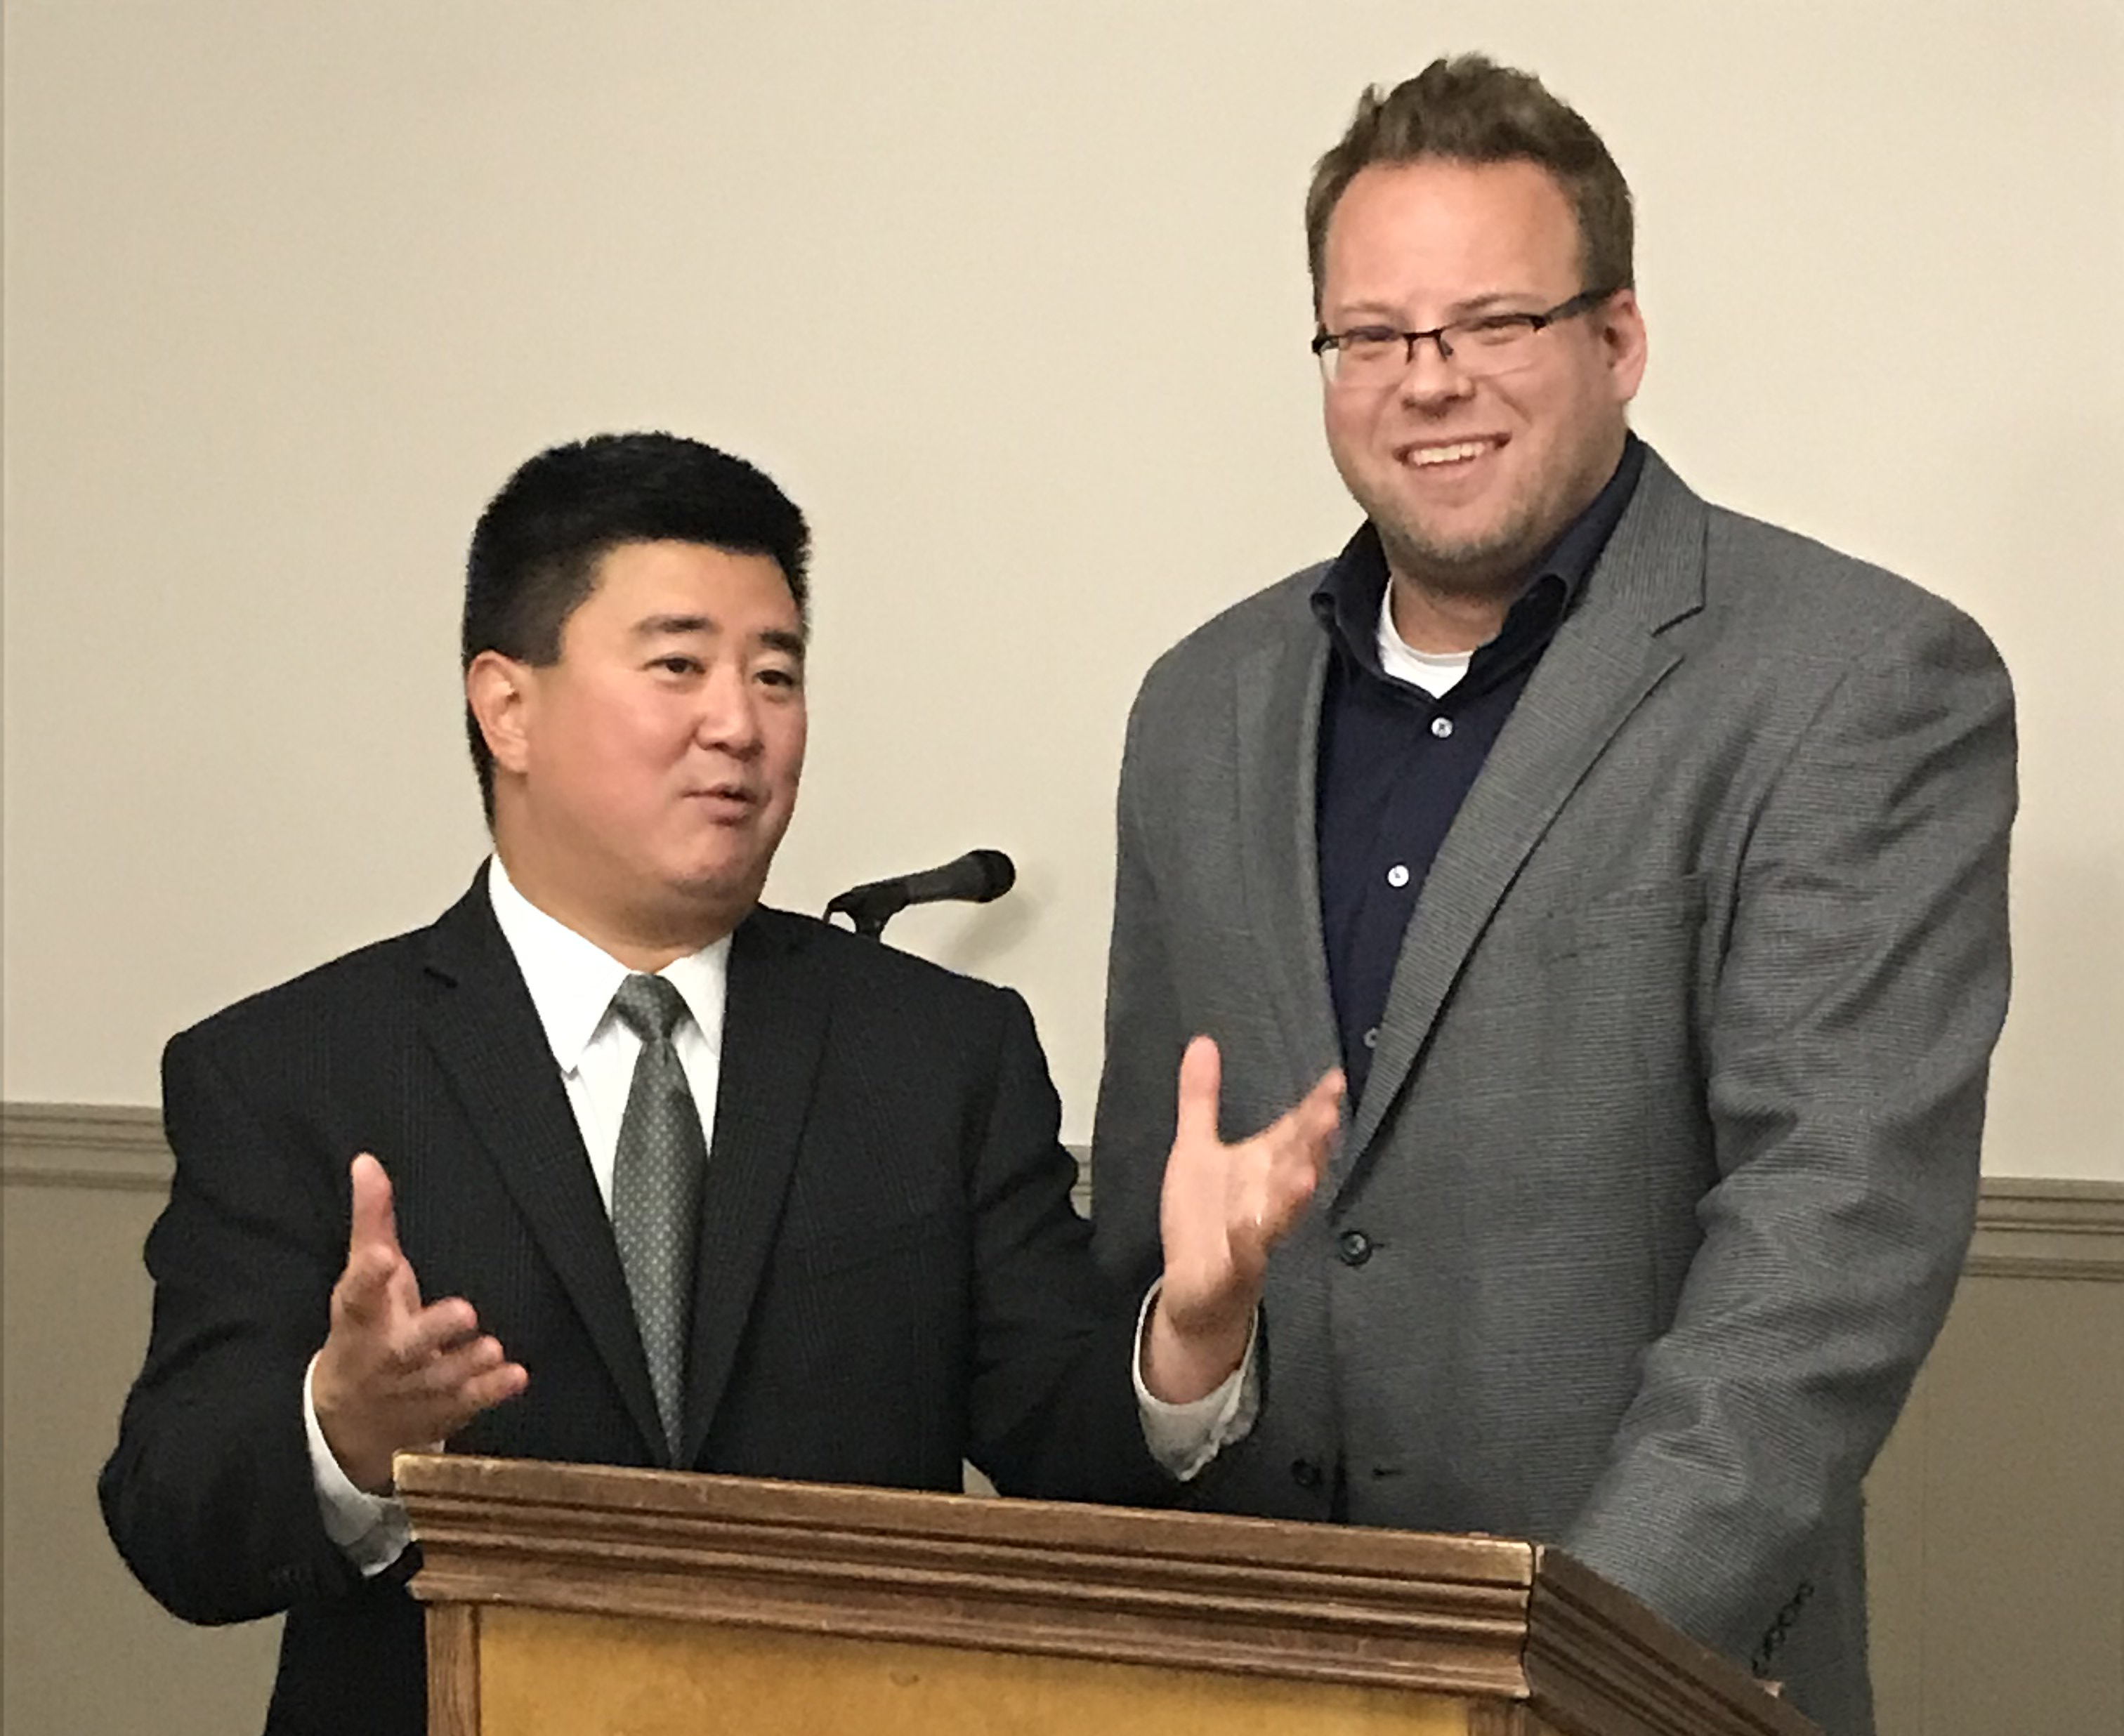 Dr. Suh and Dr. Kovac Speak at Men's Health Seminar